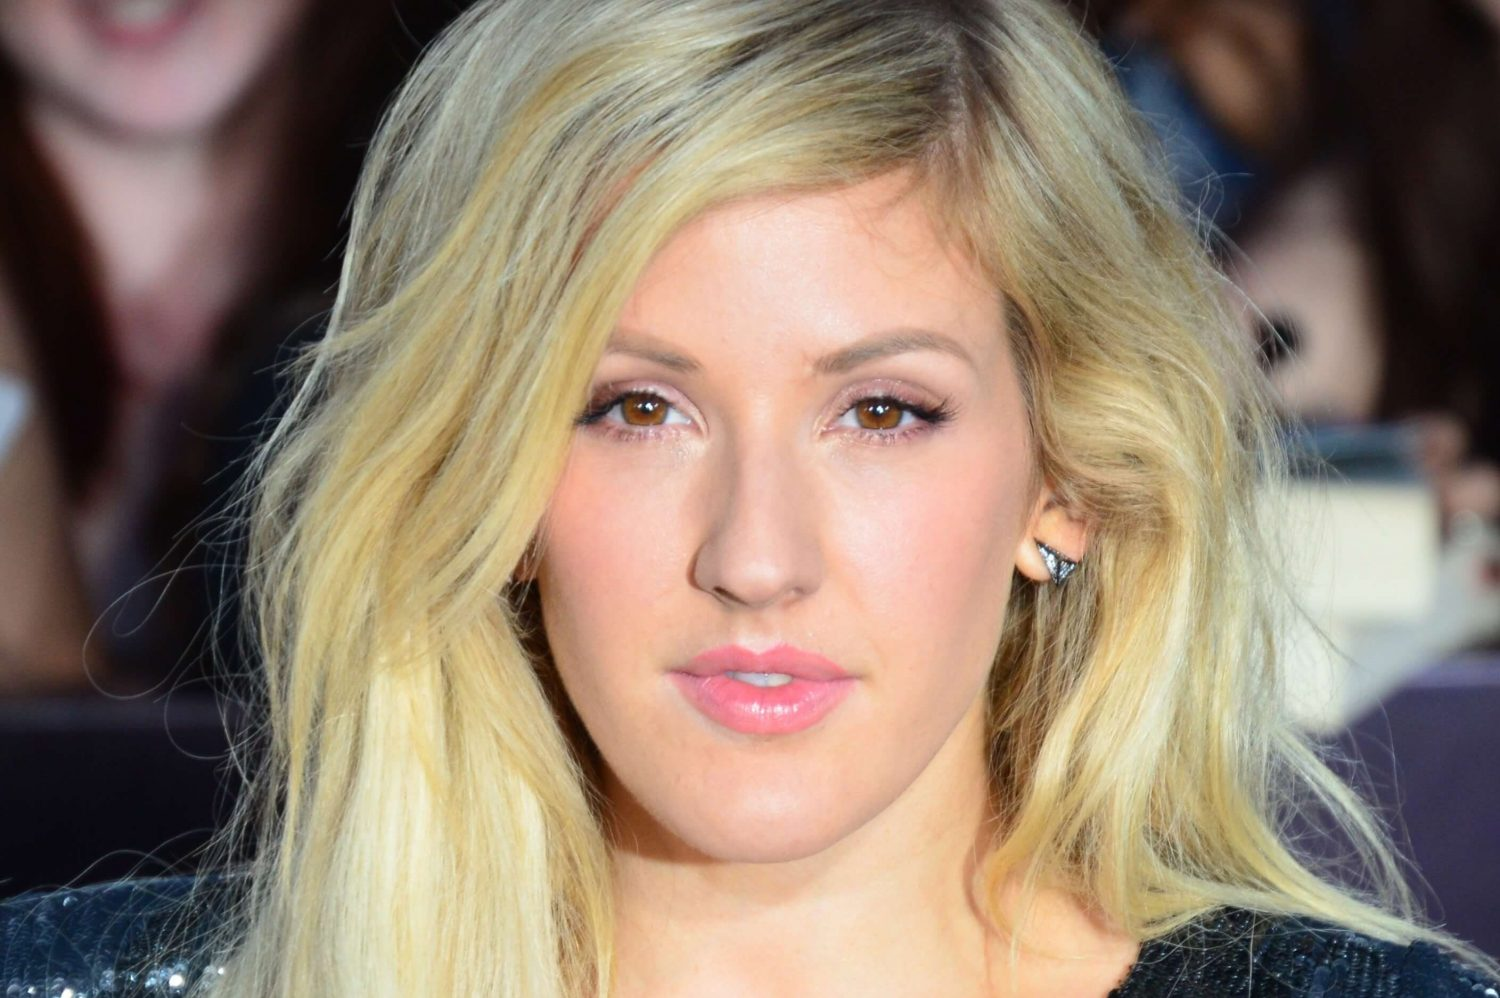 Aspiring Vegan Musician Ellie Goulding Says Ditching Meat 'Changed Her Life'